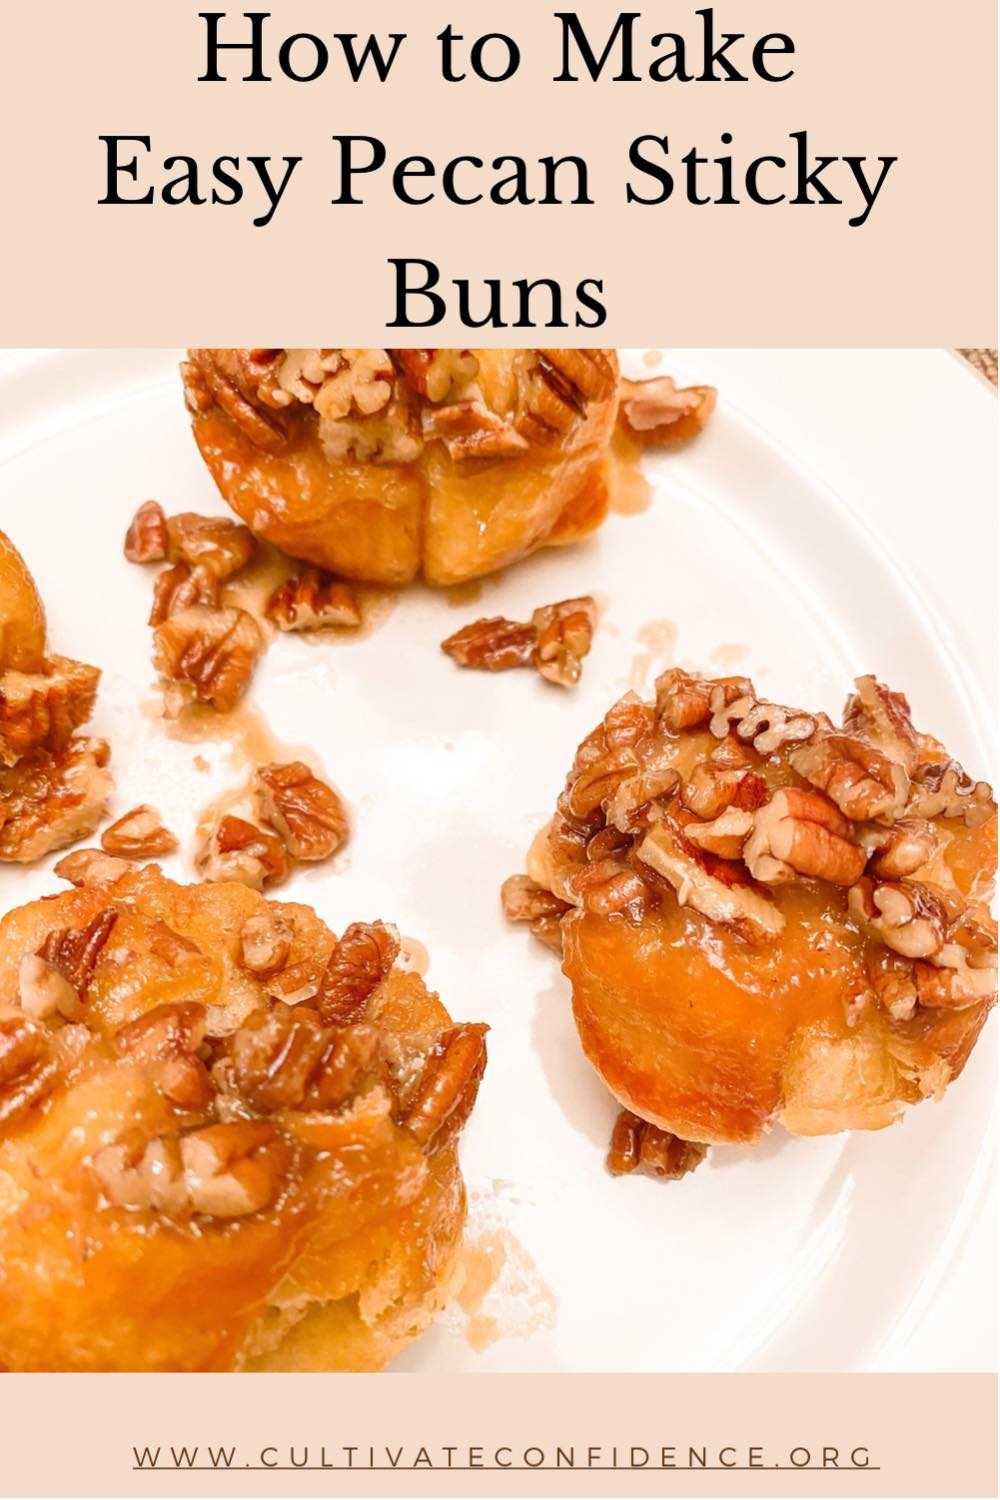 How to Make Easy Pecan Sticky Buns